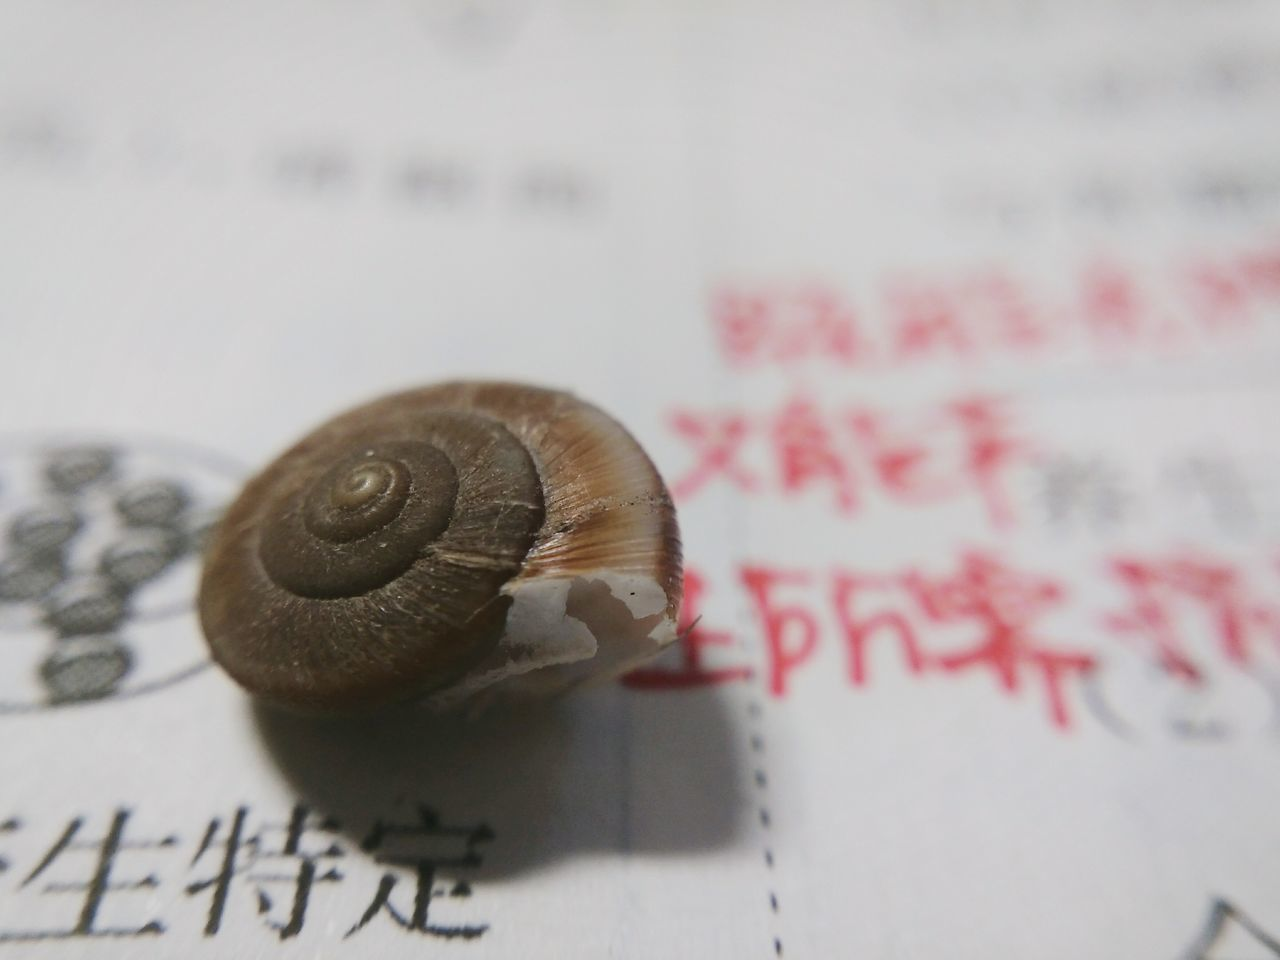 text, snail, communication, no people, one animal, close-up, book, education, paper, indoors, animal themes, day